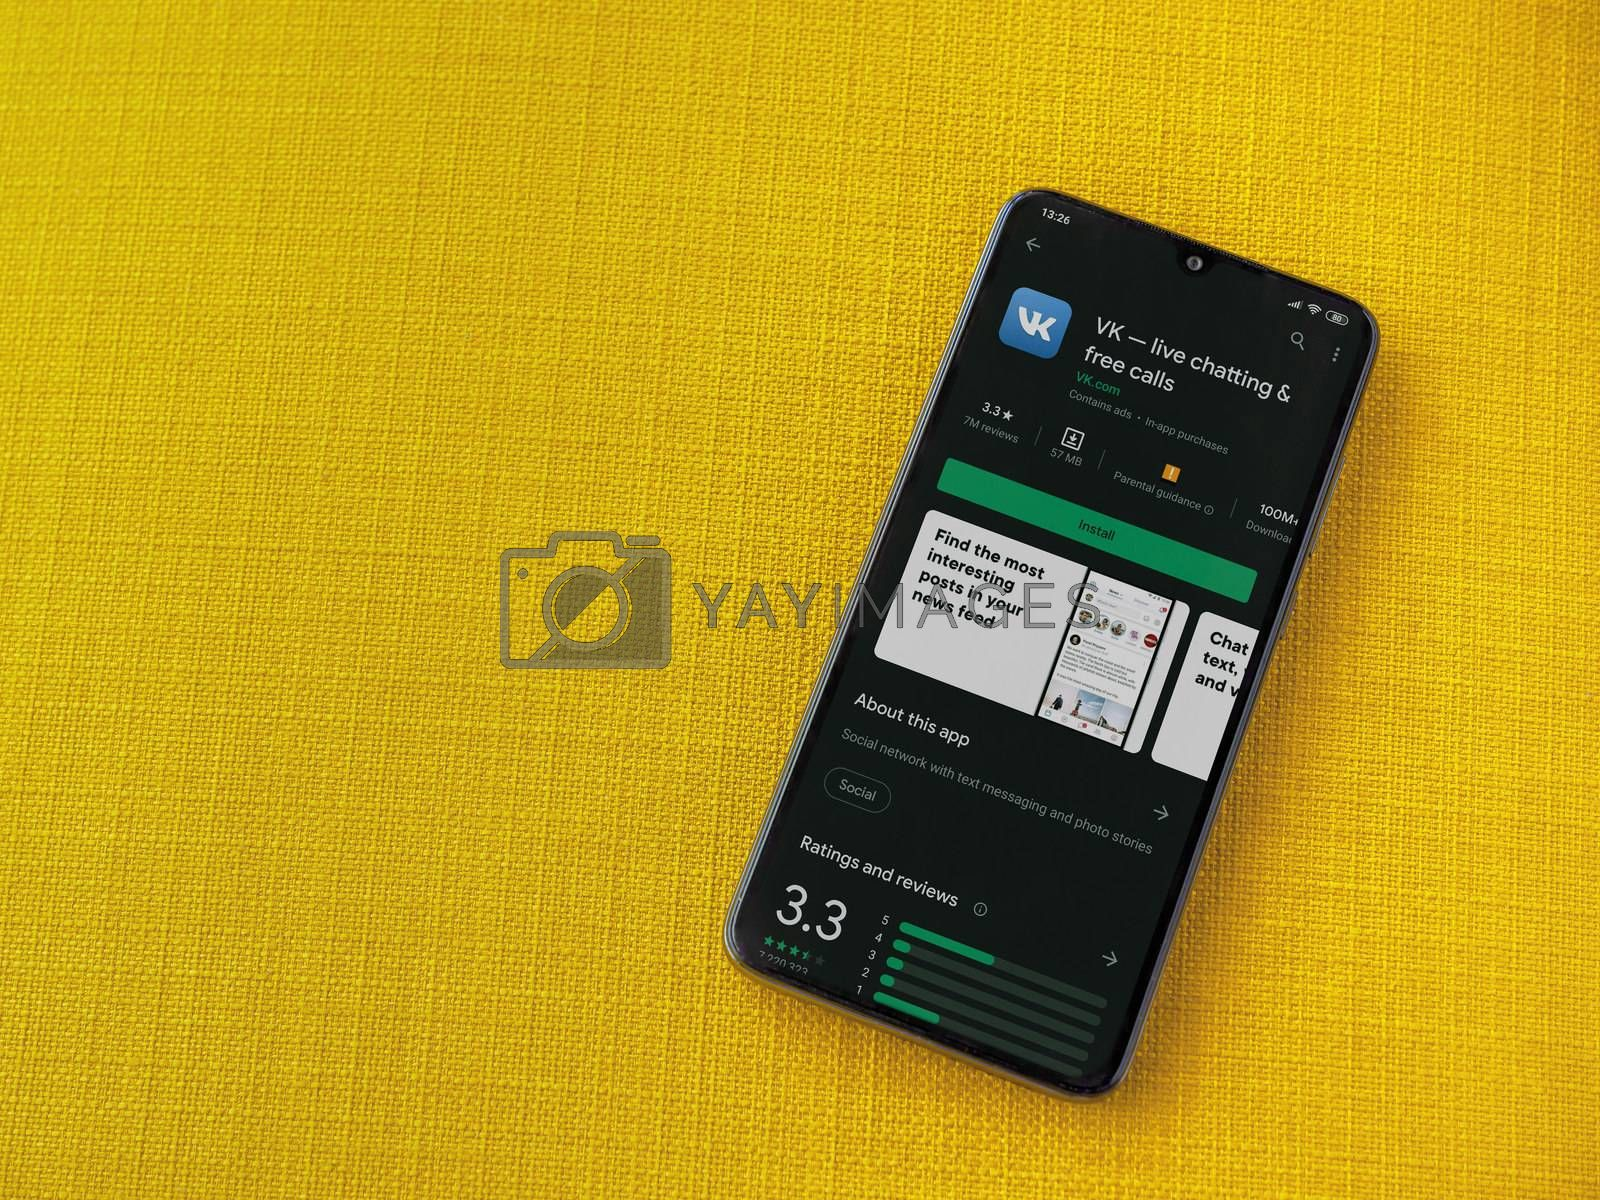 Lod, Israel - July 8, 2020: VK app play store page on the display of a black mobile smartphone on a yellow fabric background. Top view flat lay with copy space.